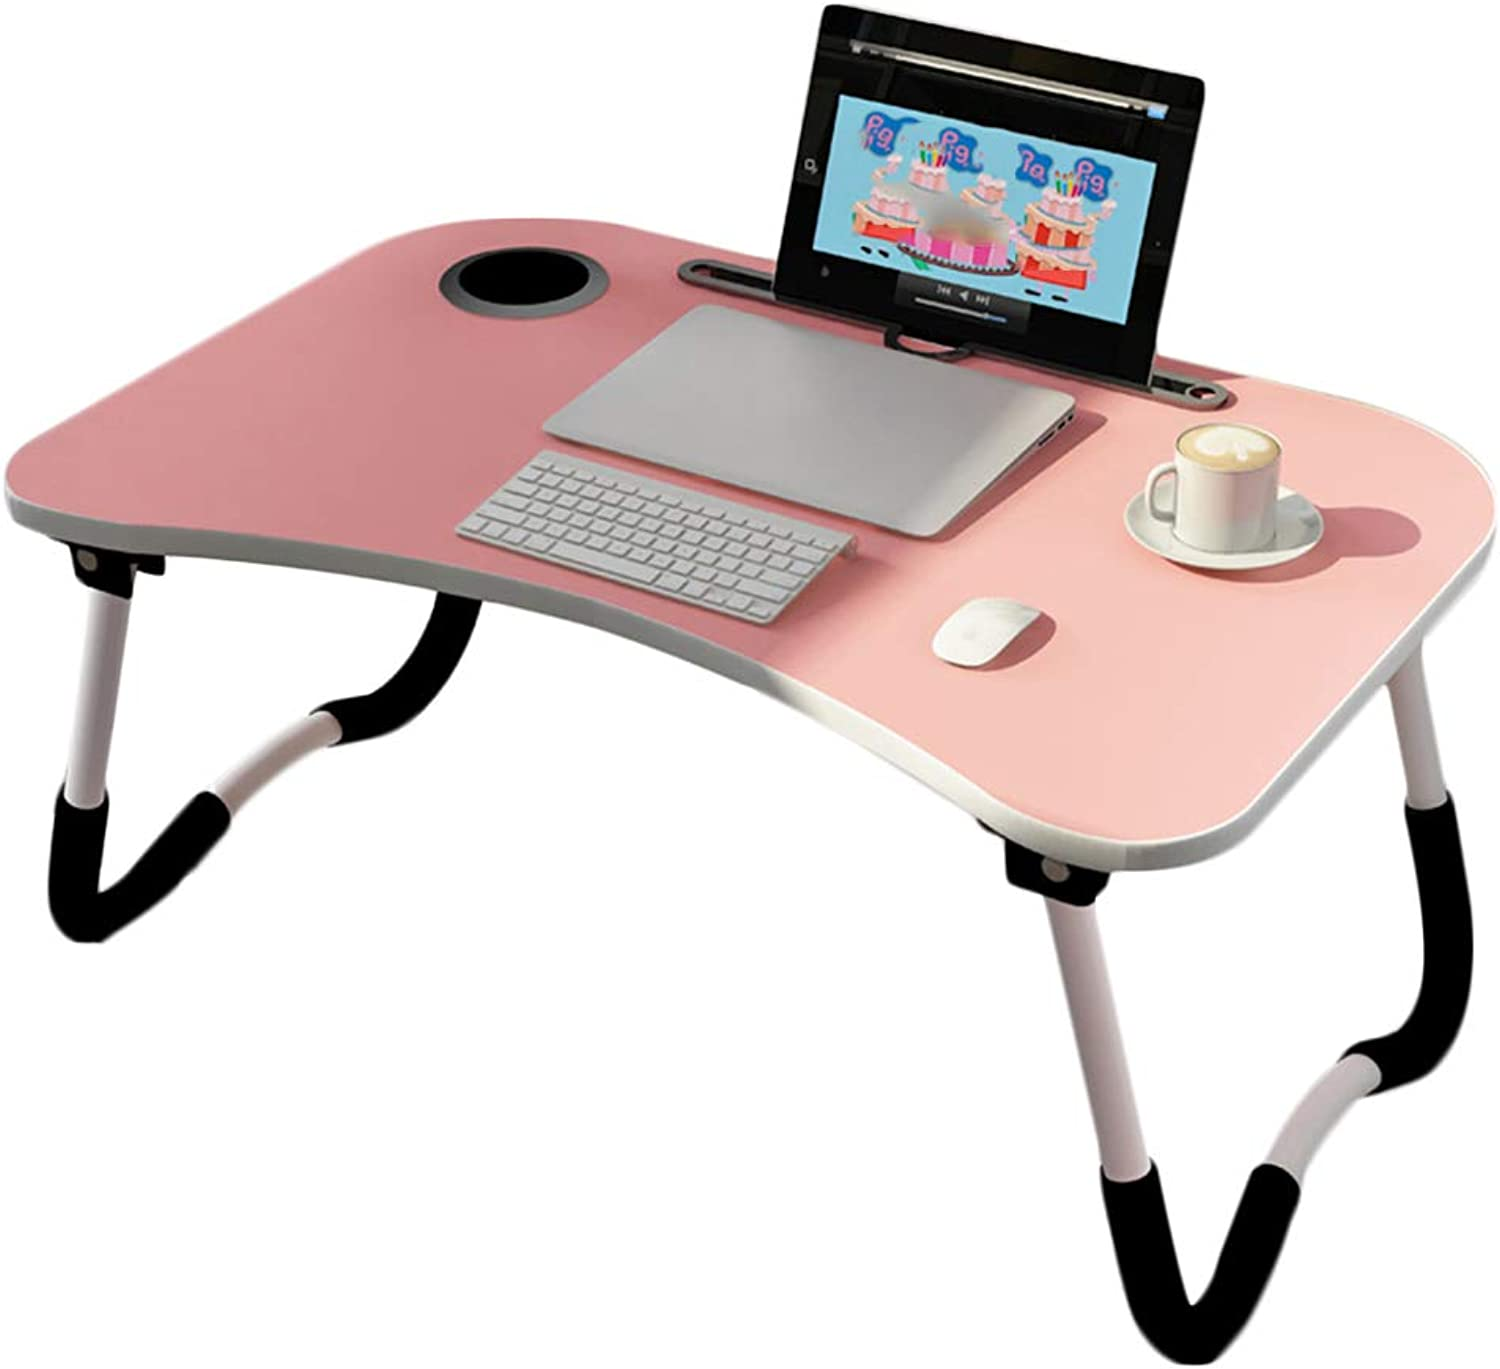 Zxwzzz Bed Desk Folding Table Dormitory Laptop Table Multi-Functional Bedroom Student Small Table Lazy Table (color   Pink)